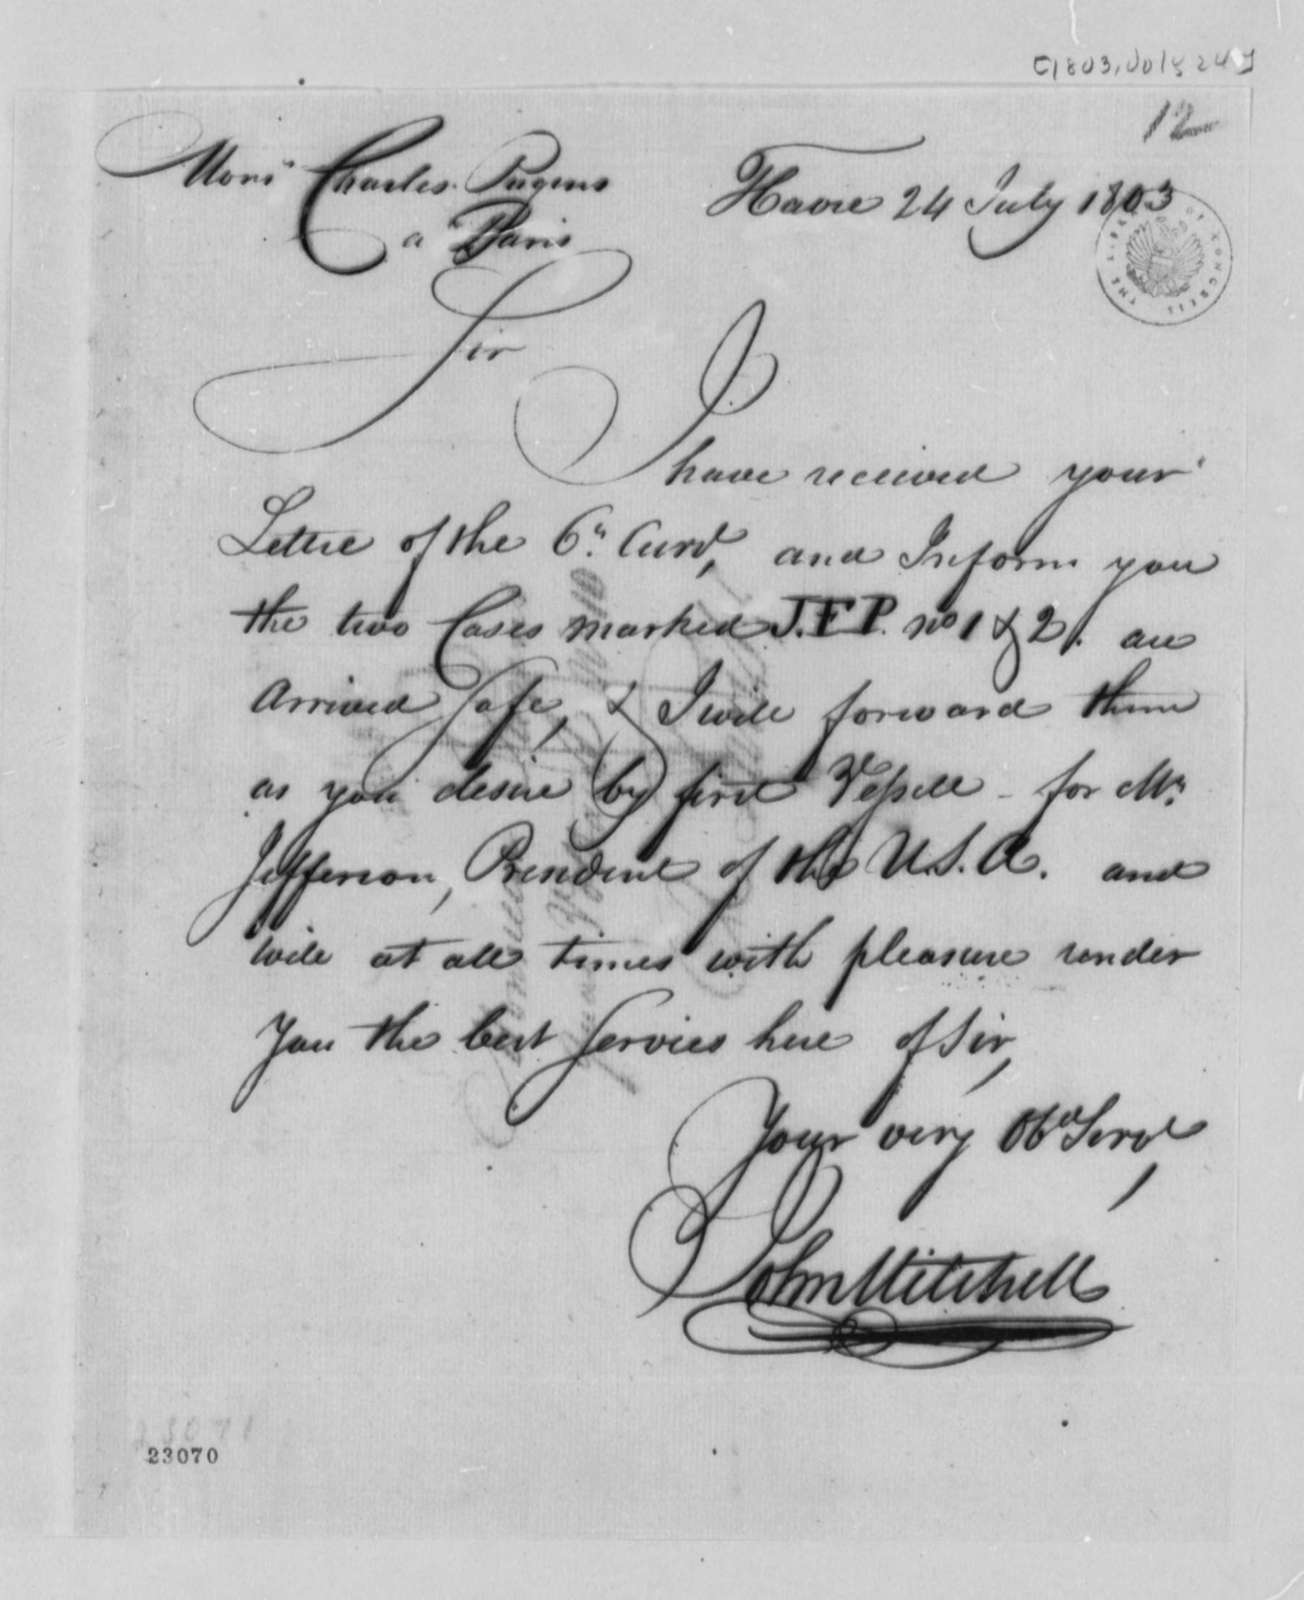 John Mitchell to Charles de Pougens, July 24, 1803